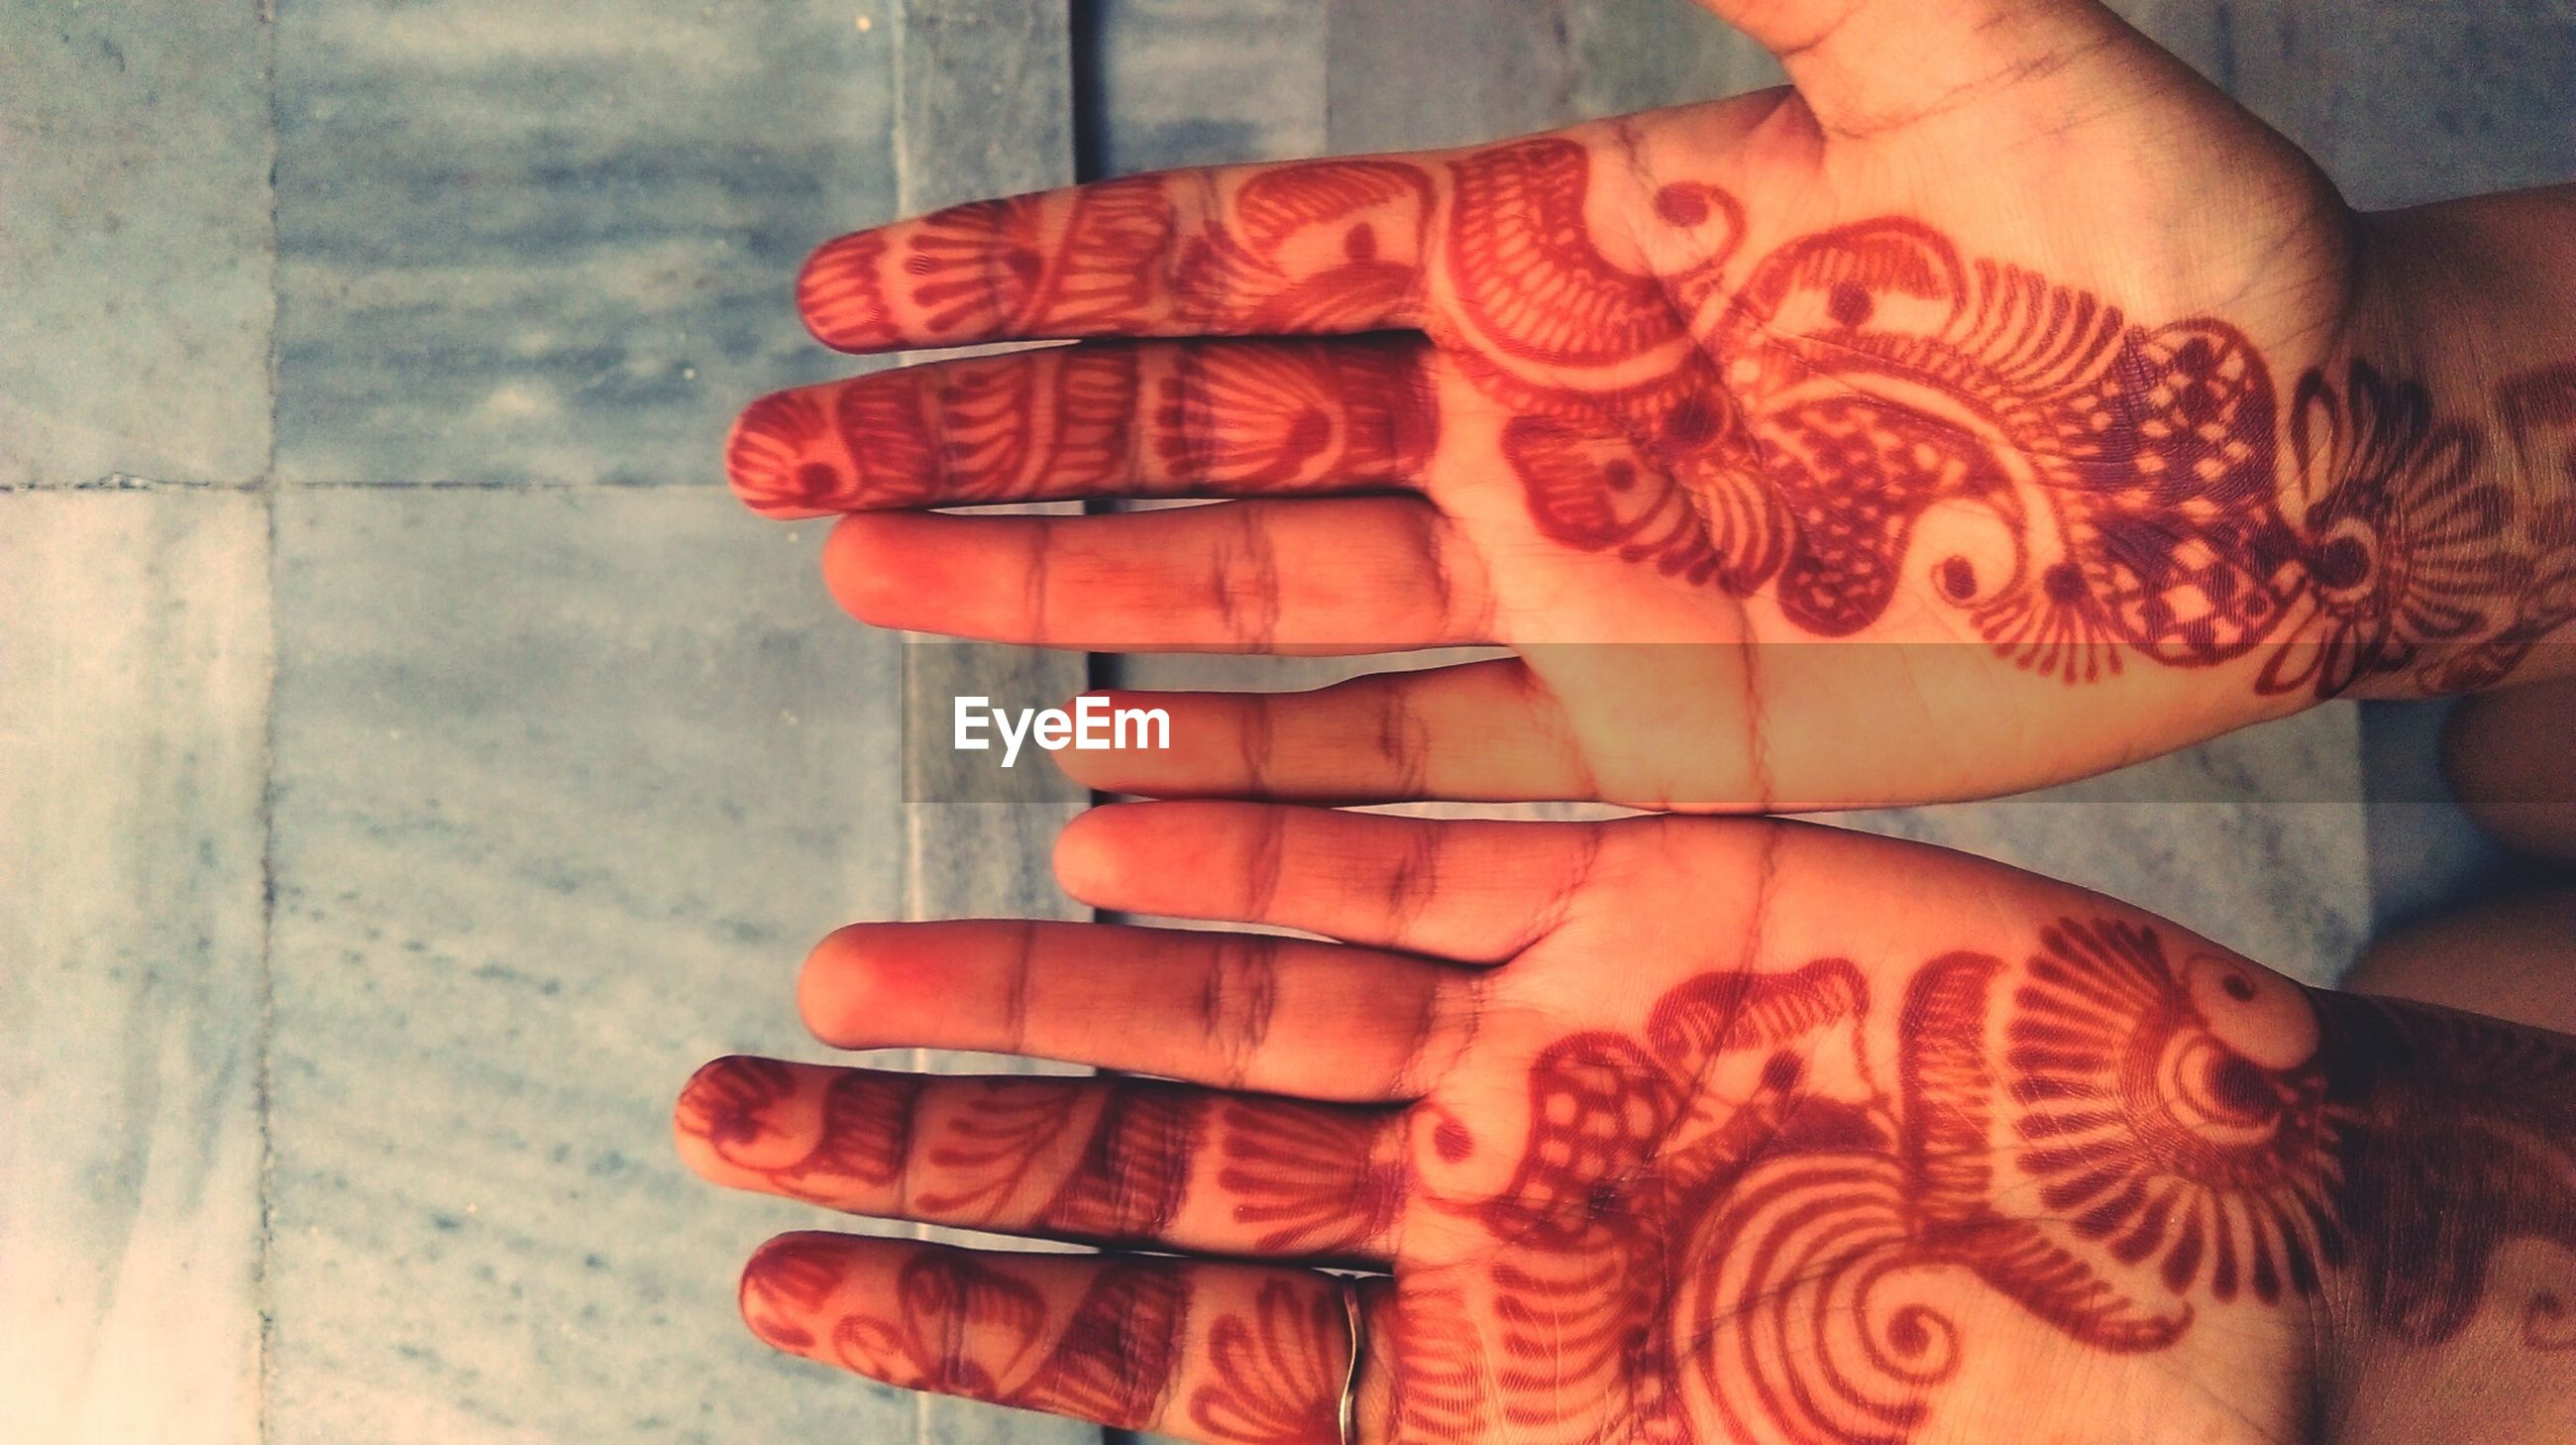 Cropped image of person showing henna tattoo